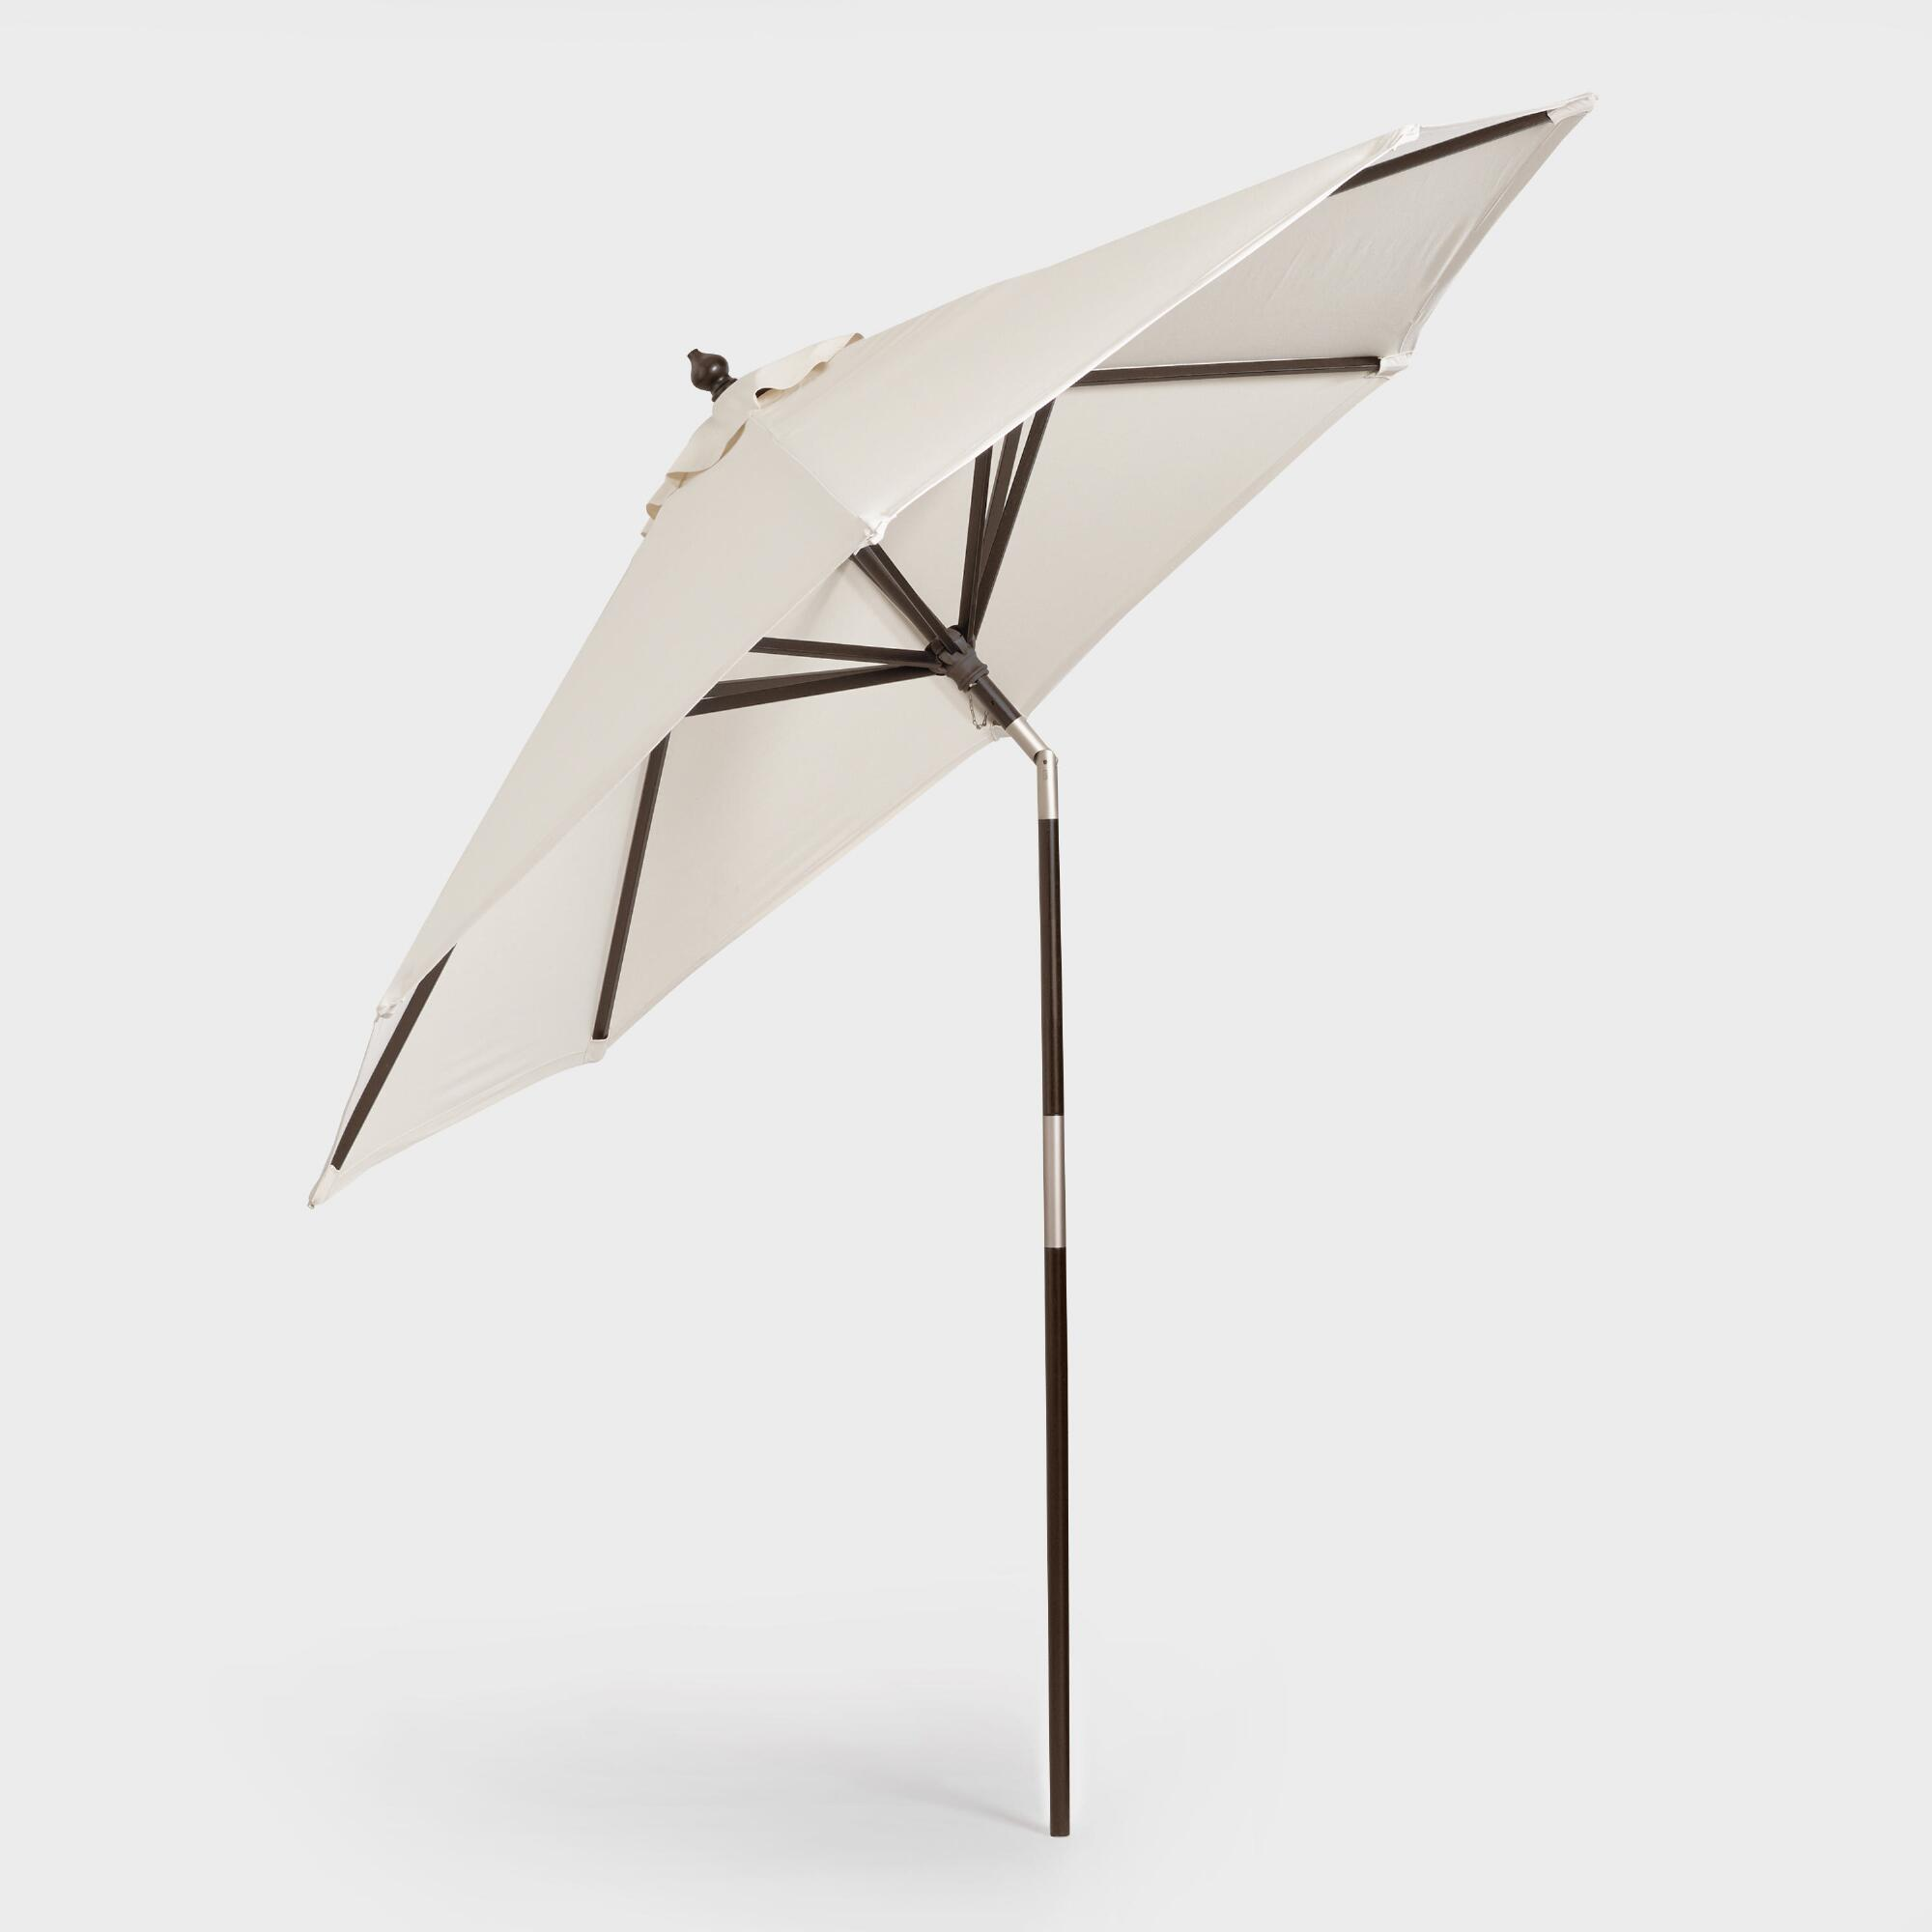 9' Tilting Market Umbrella